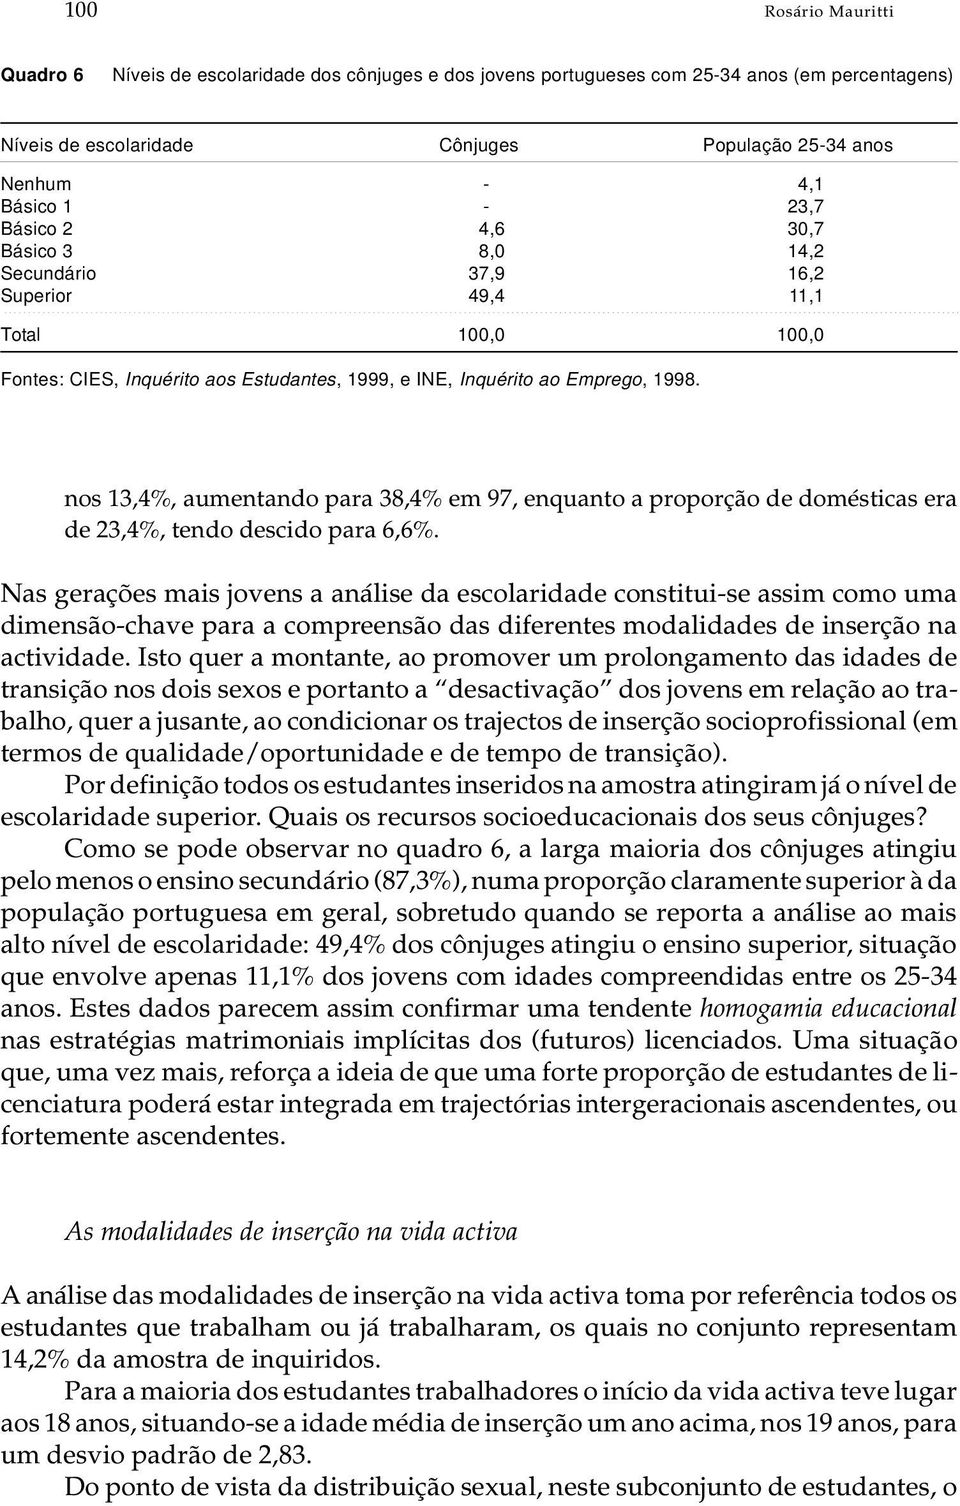 go, 1998. nos 13,4%, au men tan do para 38,4% em 97, en quan to a pro por ção de do més ti cas era de 23,4%, ten do des ci do para 6,6%.